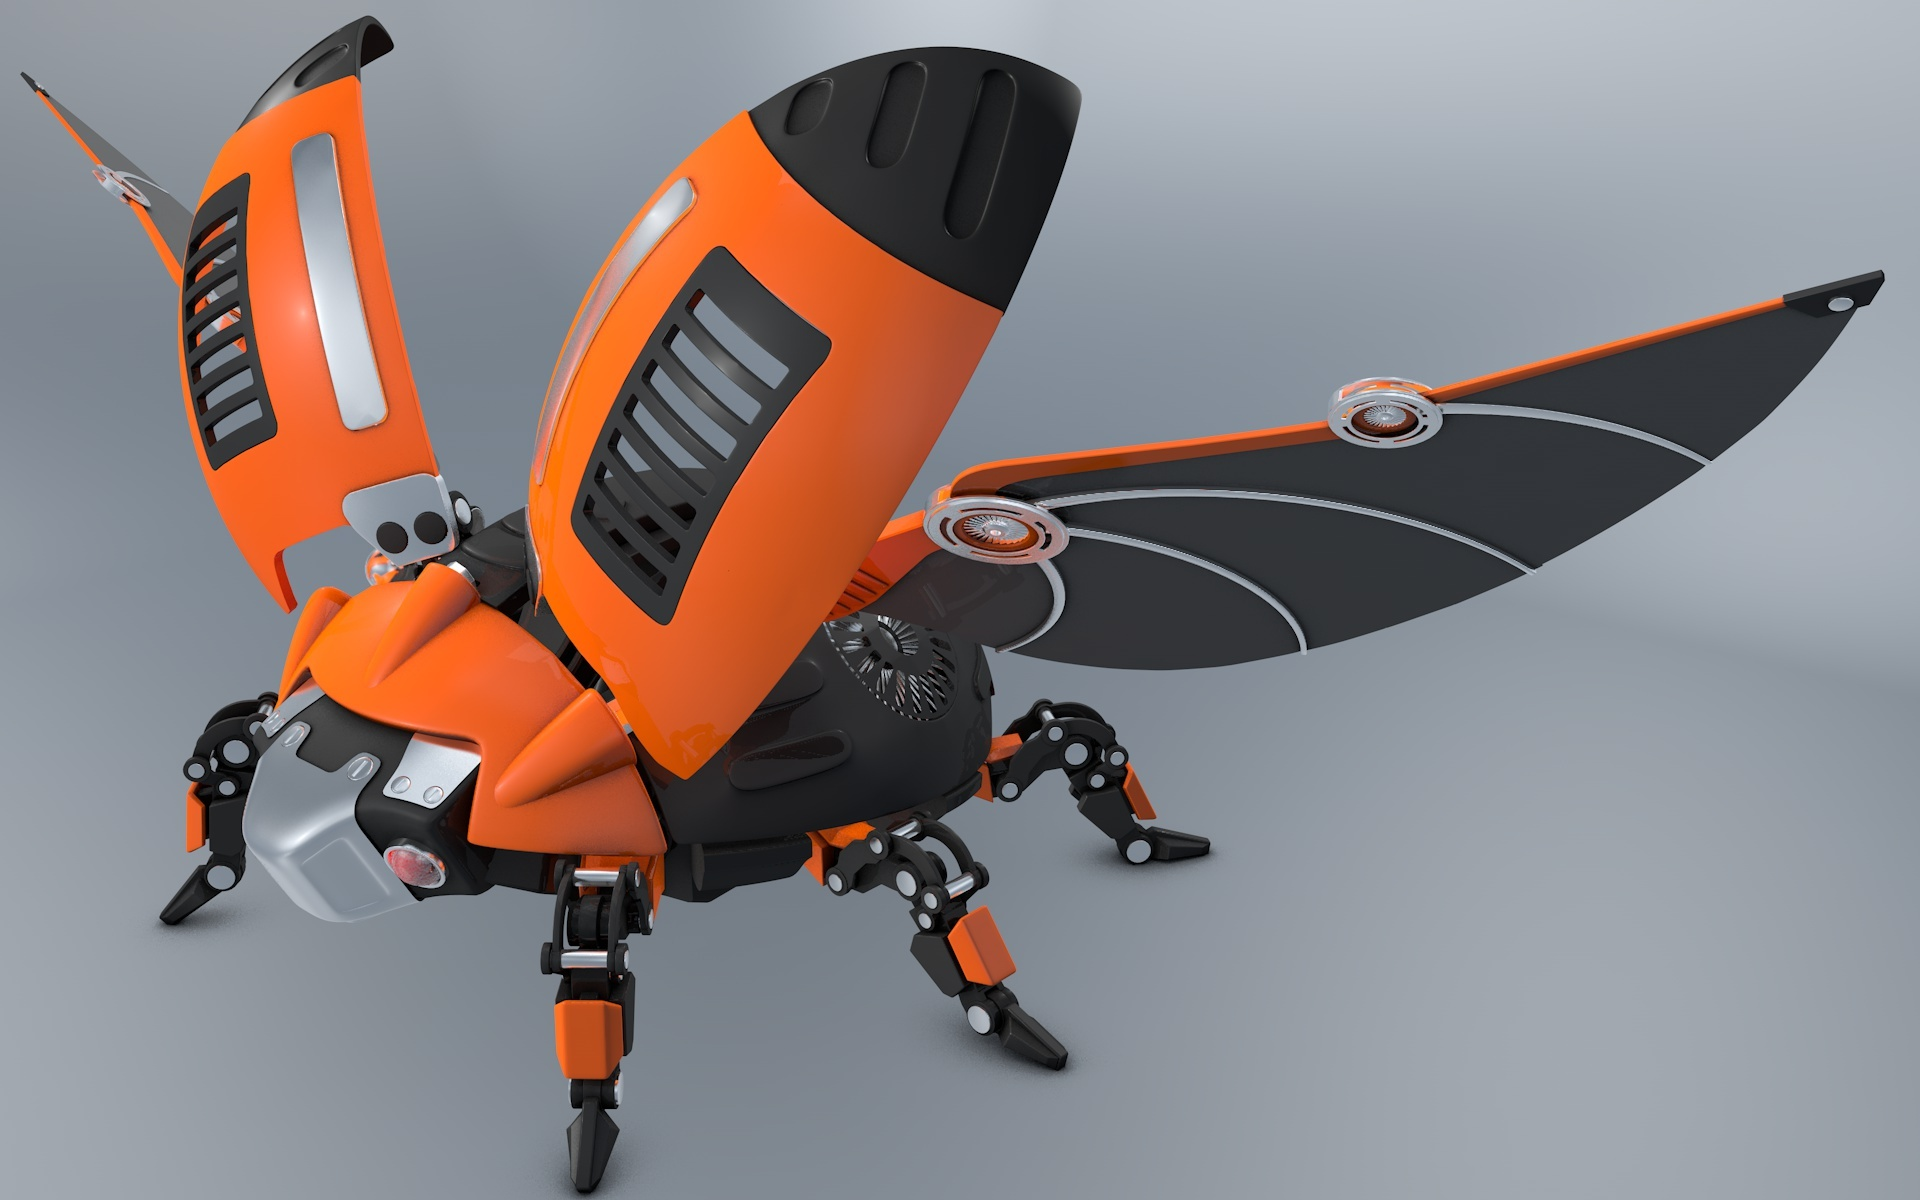 Wallpaper Robot 3d Hd Beetle Ladybug Robot By Vladim00719 3docean